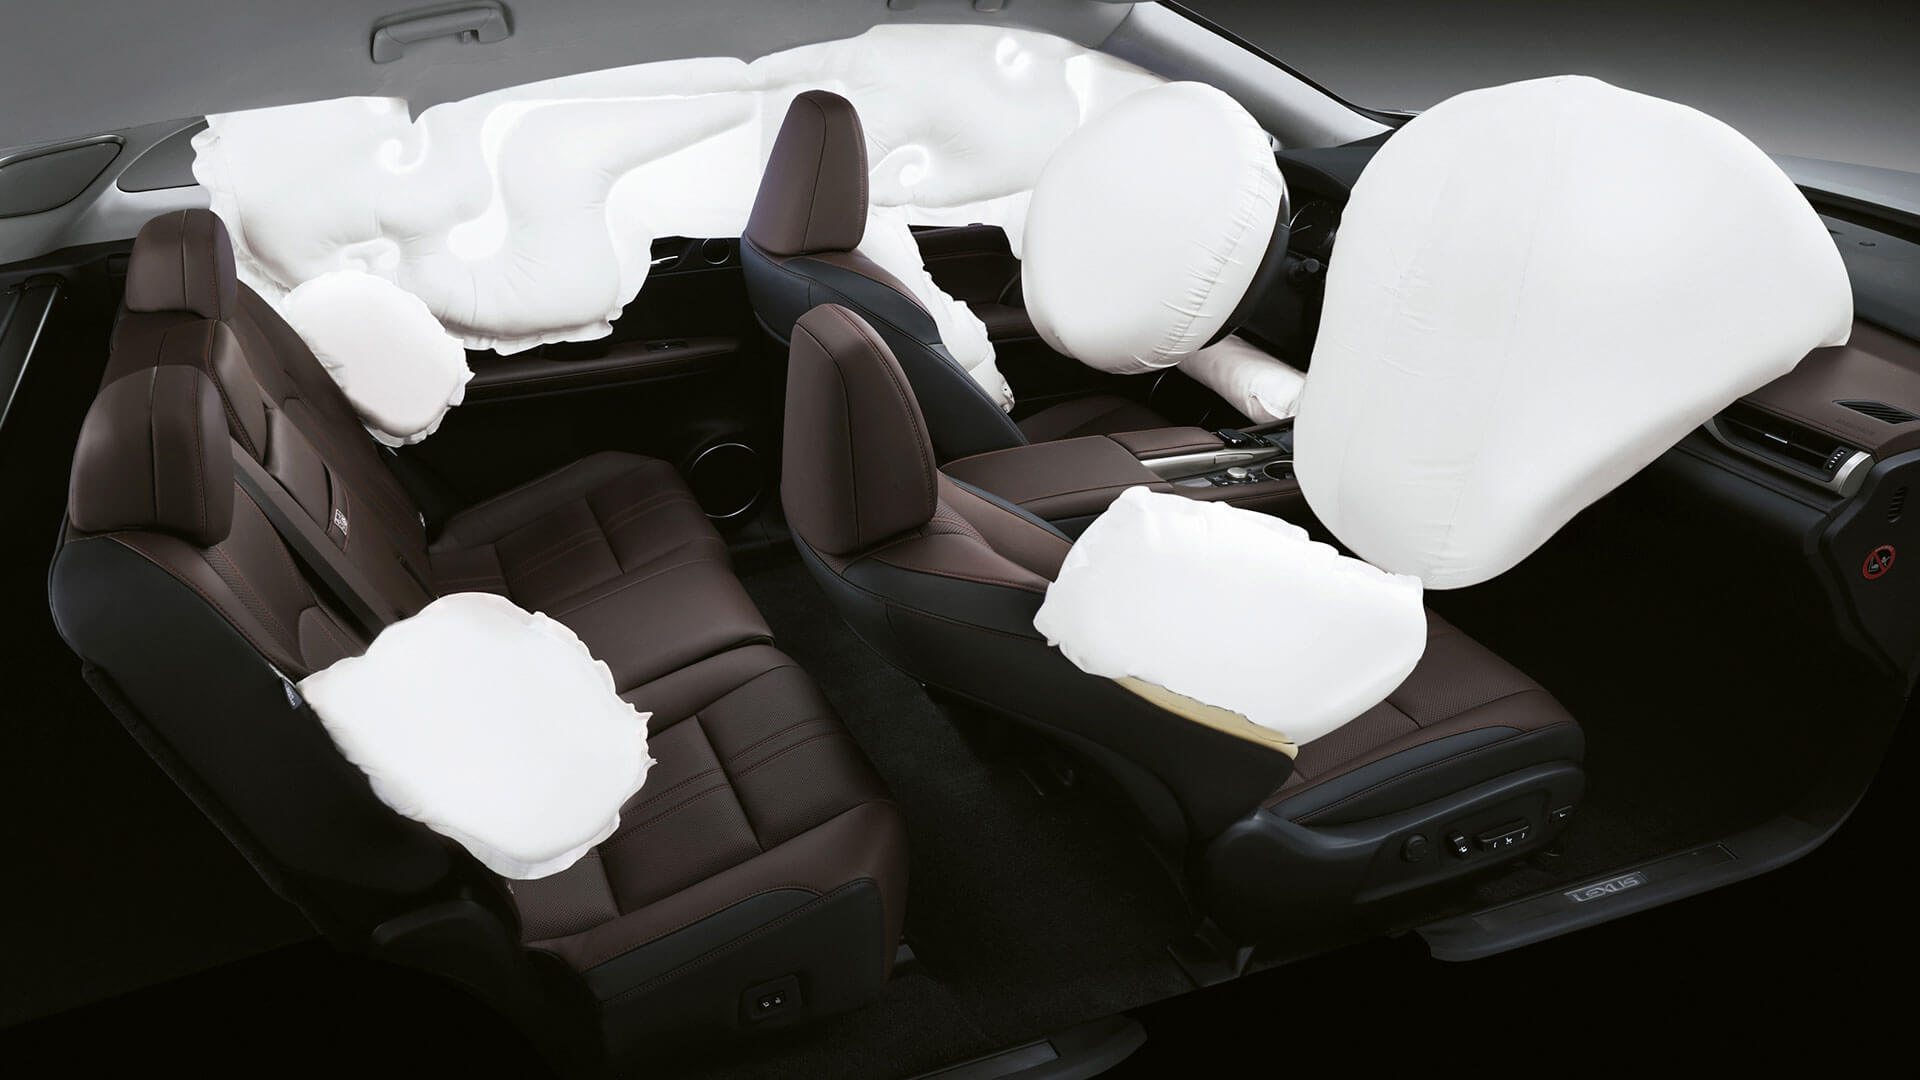 2017 lexus rx 200t features airbags